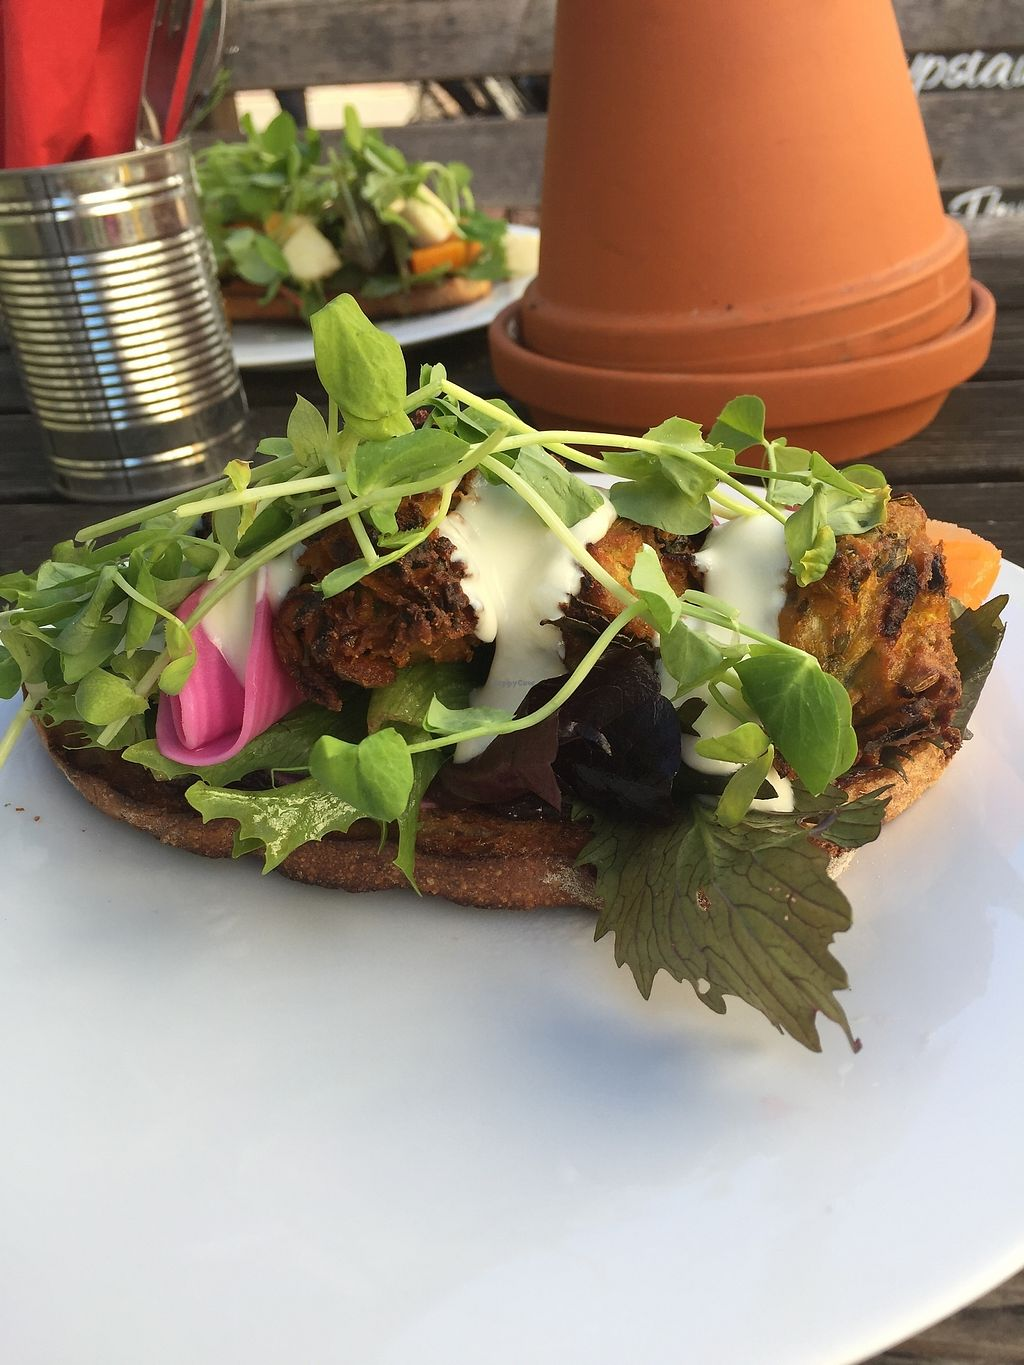 """Photo of Pattypan Kitchen at The Victory Pub  by <a href=""""/members/profile/greedyveganmama"""">greedyveganmama</a> <br/>Vegan pakora open sandwich <br/> September 24, 2017  - <a href='/contact/abuse/image/100701/307699'>Report</a>"""